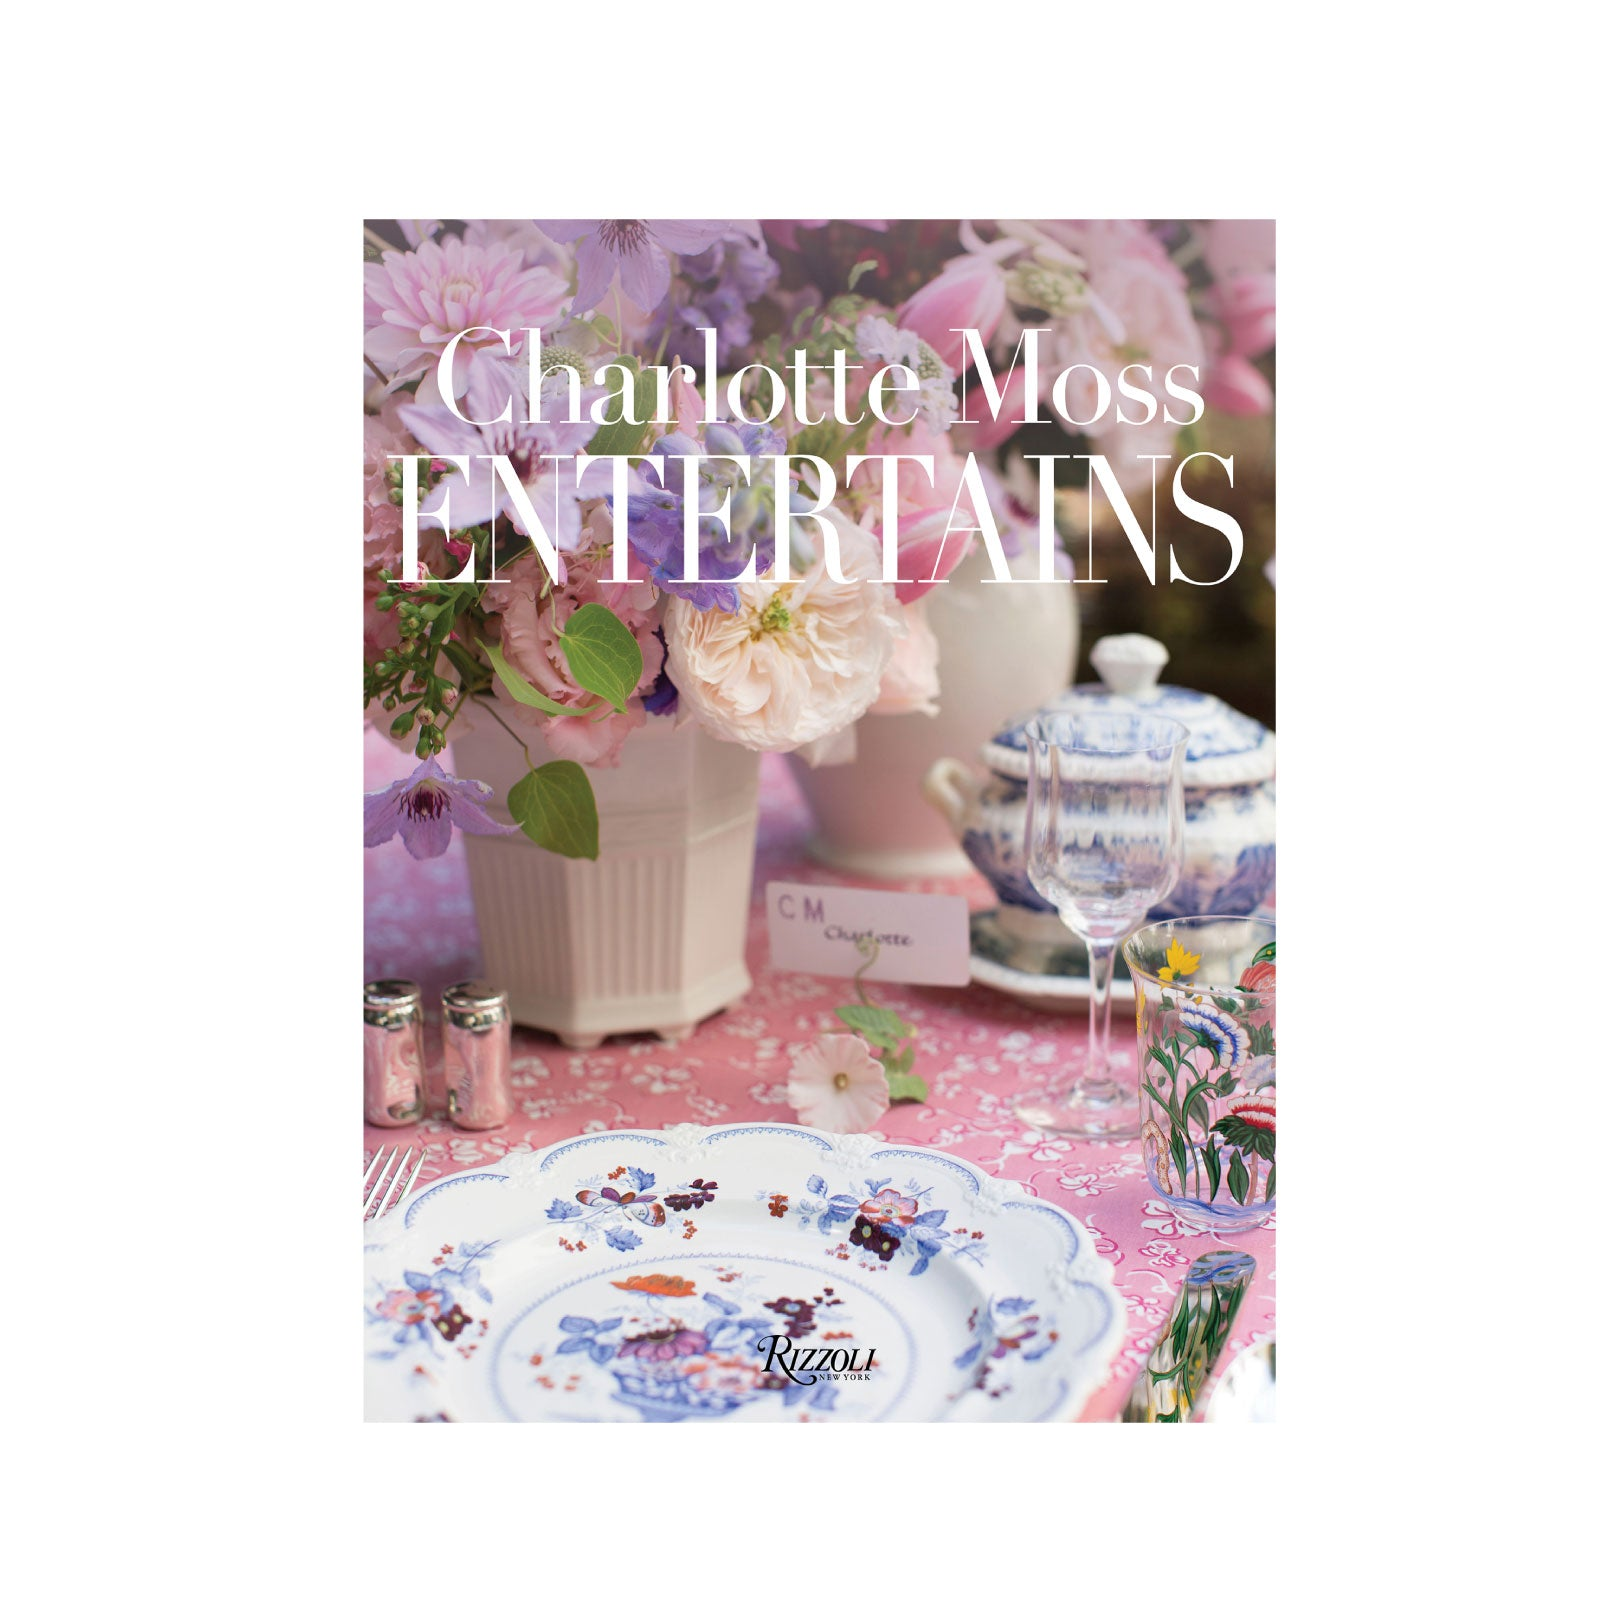 Charlotte Moss Entertains - Celebrations and Everyday Occasions